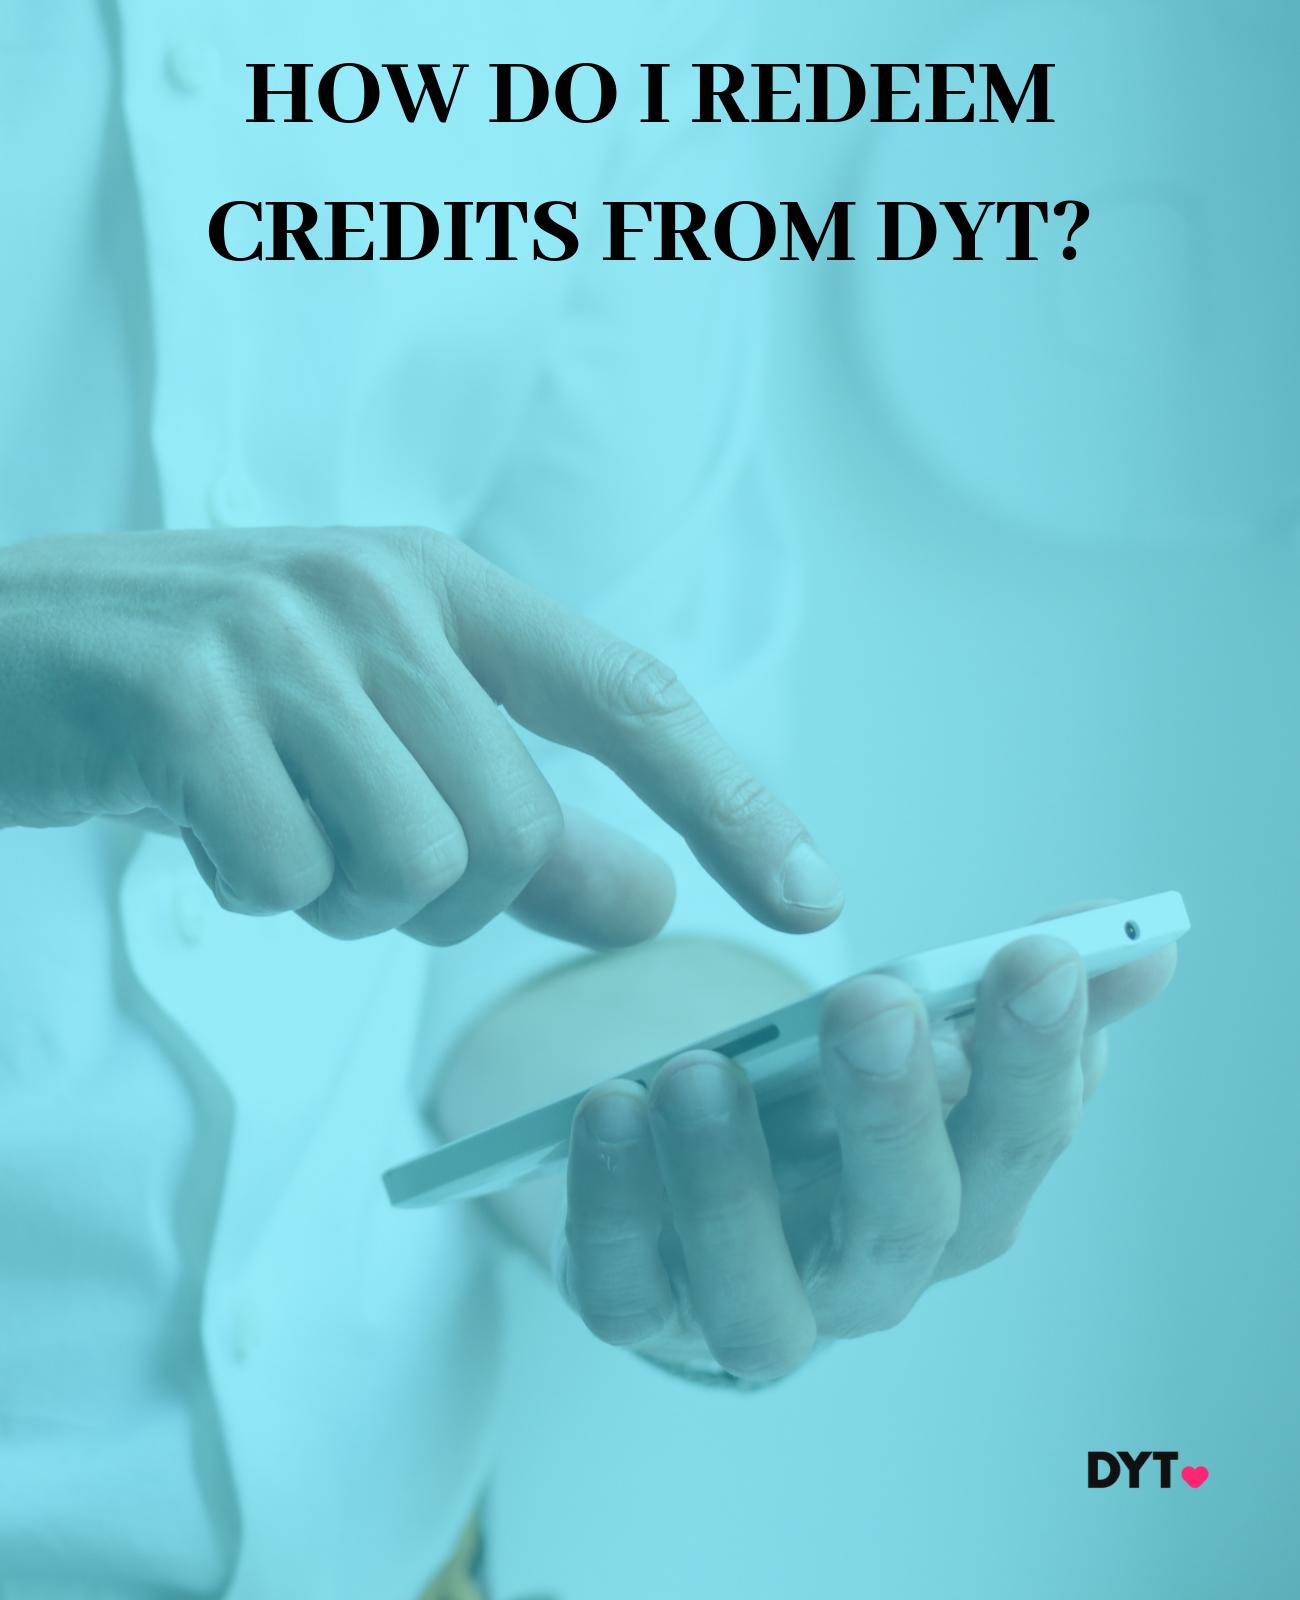 How To Redeem Credits From The DYT App